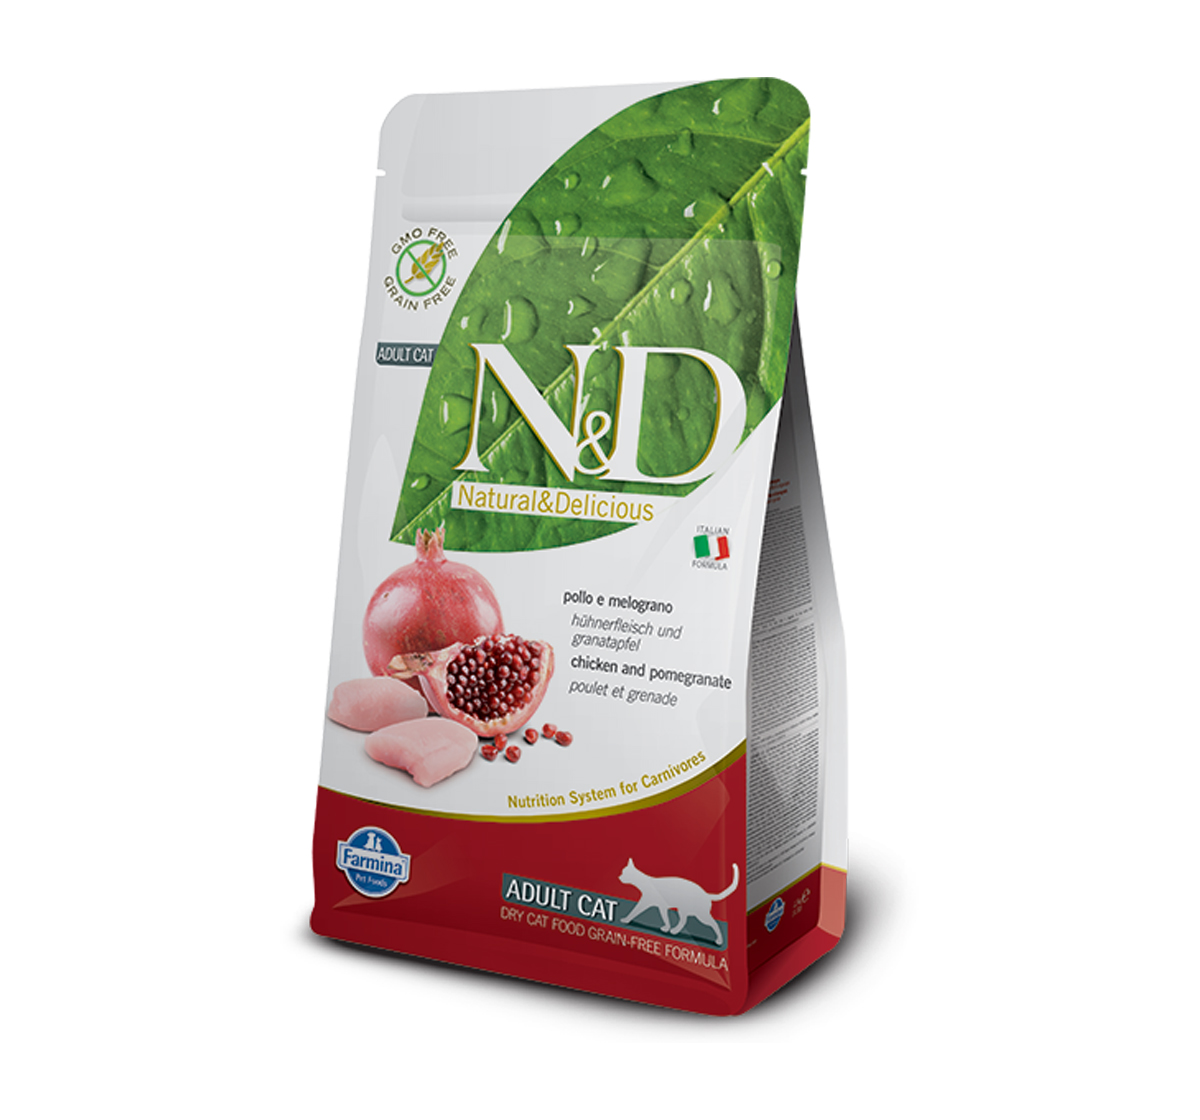 Farmina N&D Dry Cat Food Grain Free Chicken & Pomegranate Adult Cat - 300 gm